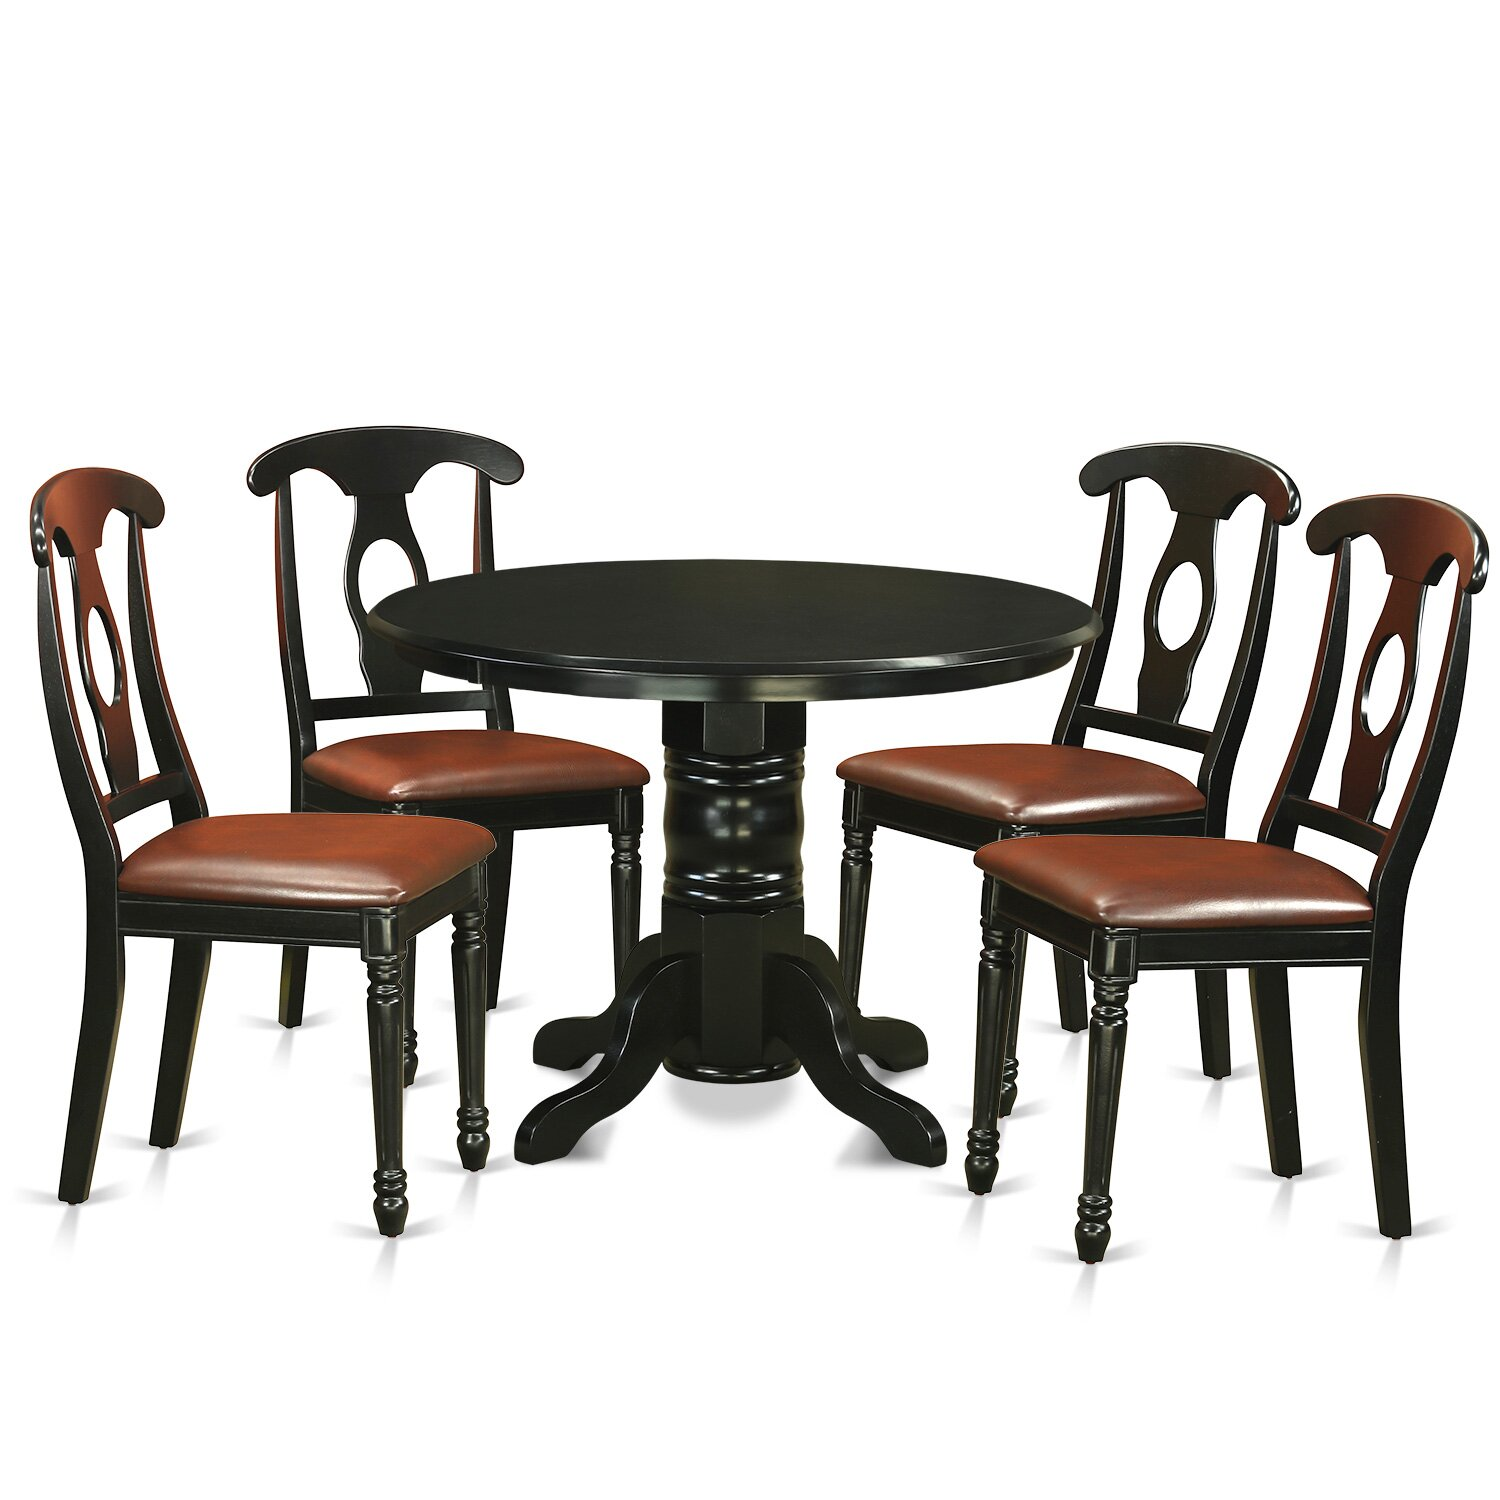 East west shelton 5 piece dining set reviews wayfair for 4 kitchen table chairs